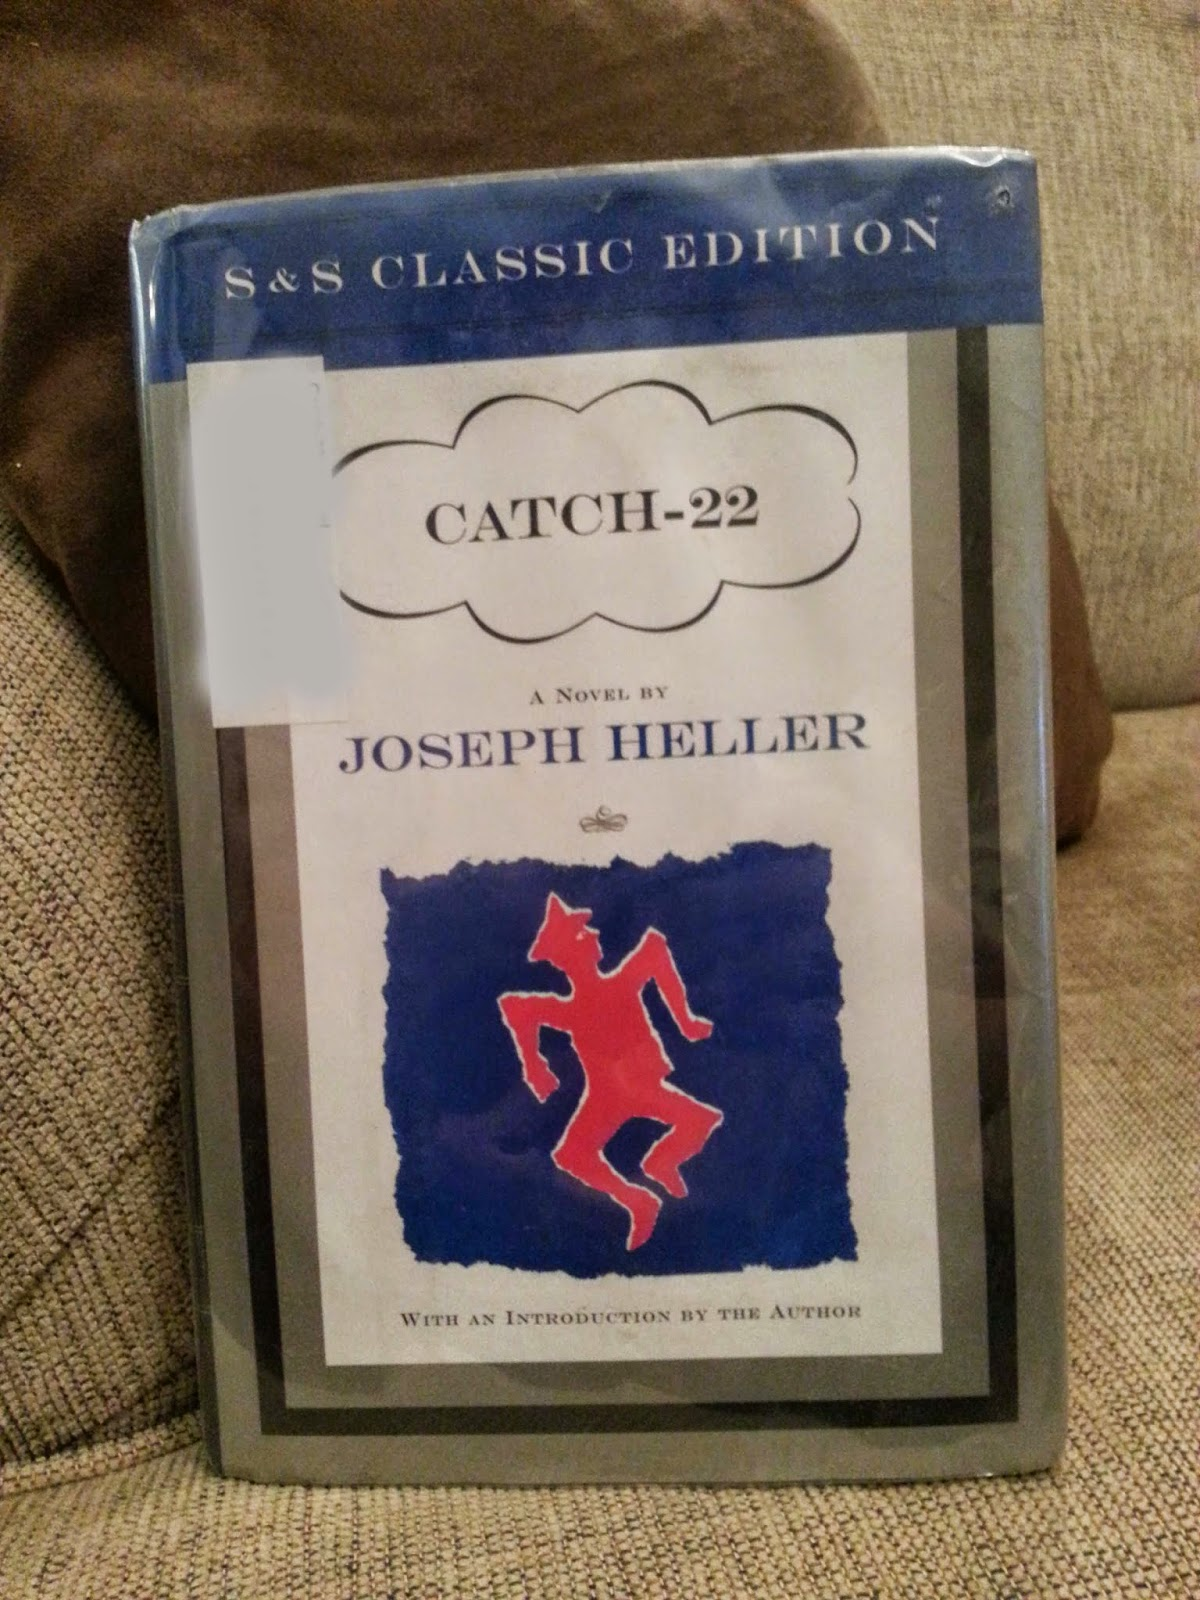 "catch 22 a comical satire by joseph heller ""that's some catch, that catch-22"" heller, joseph first edition of ""one of the most bitterly funny world war ii veterans appreciated its satire of the."